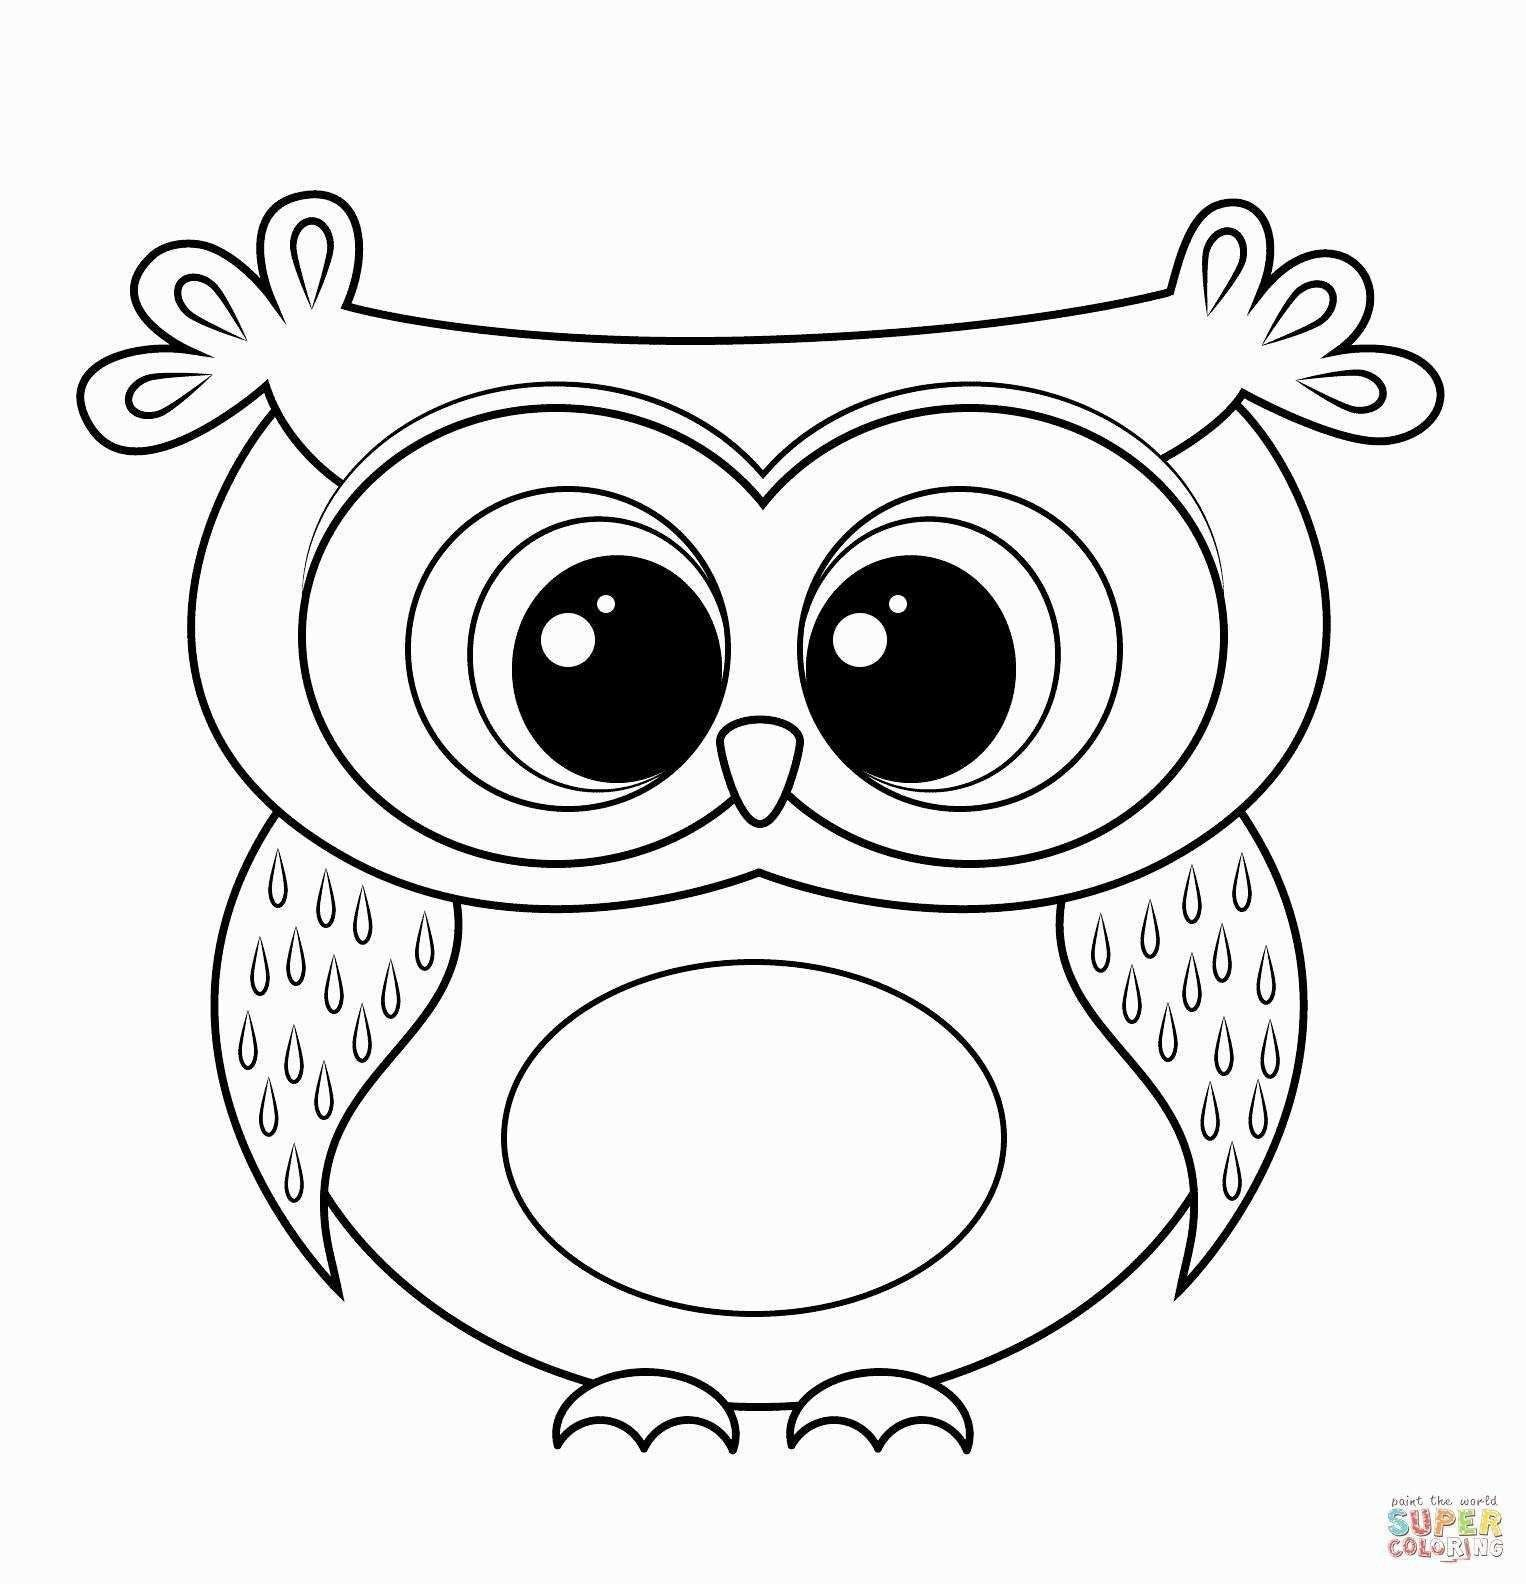 Printable Coloring Birthday Cards New Leprechaun Coloring Pages Free Fresh Free Printable Colorin Owl Coloring Pages Animal Coloring Pages Super Coloring Pages